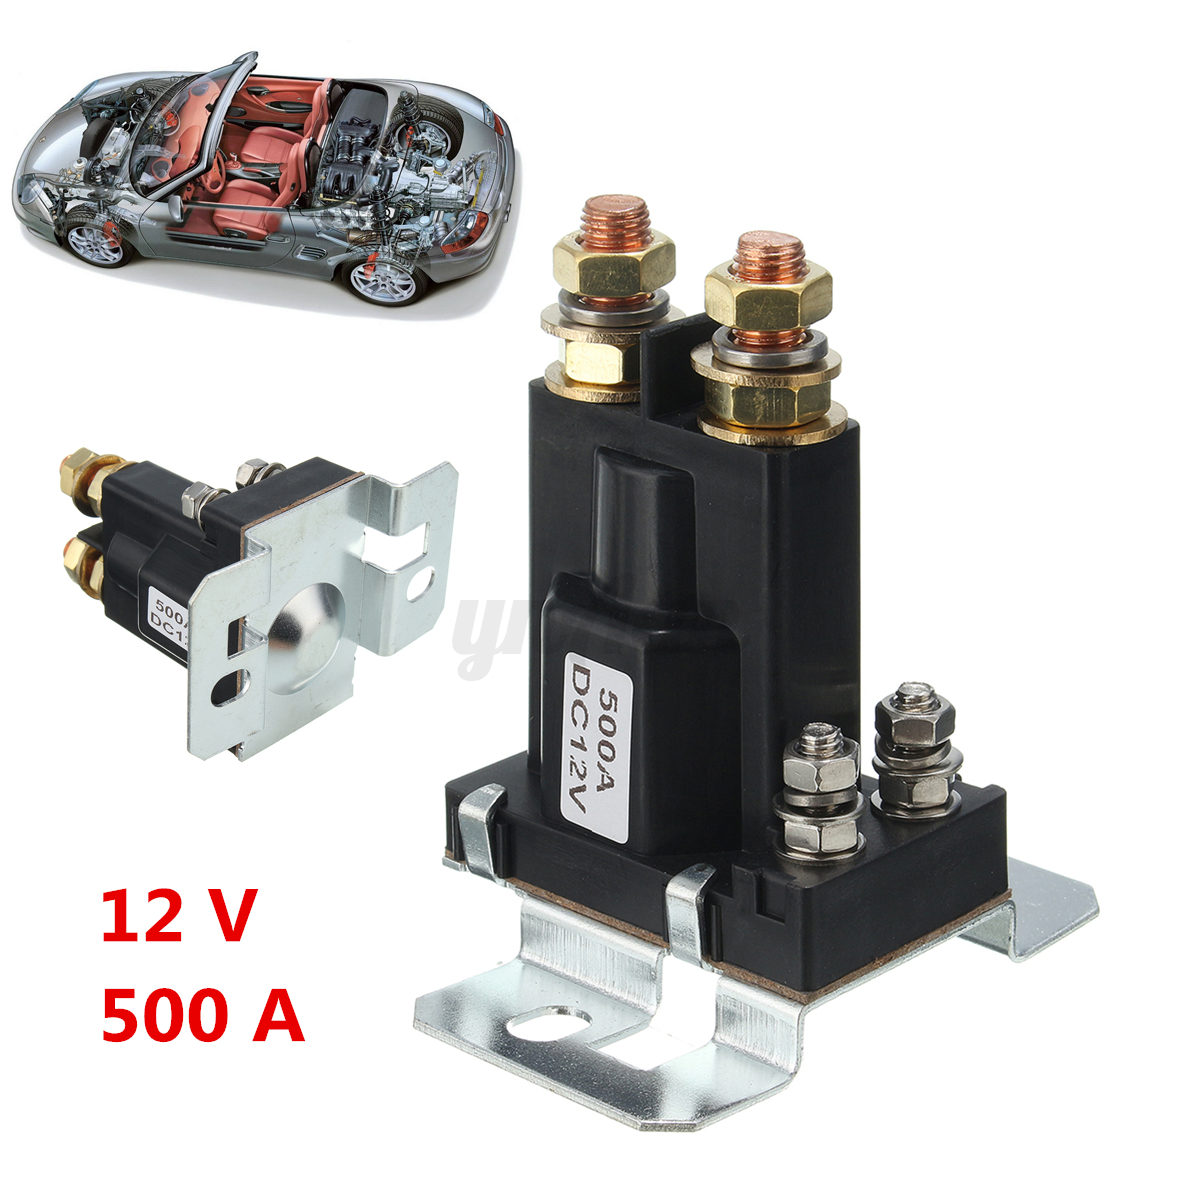 12v 4 pin 500a amp dual battery isolator car relay starter onoff image is loading 12v 4 pin 500a amp dual battery isolator freerunsca Choice Image